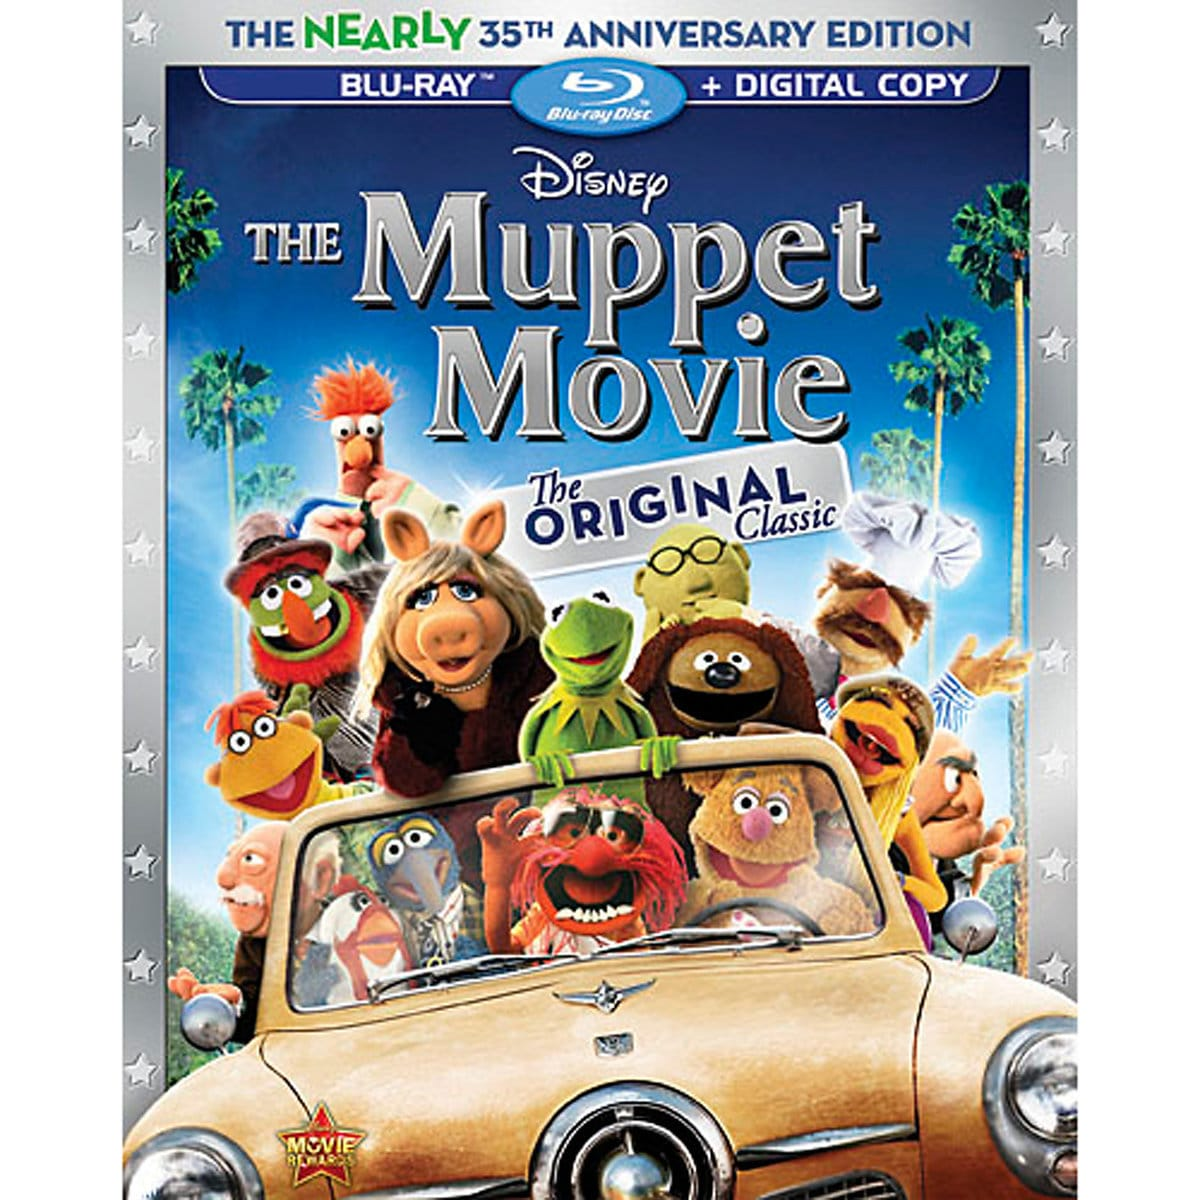 67a85998cf4ca Product Image of The Muppet Movie Blu-ray + Digital Copy   1